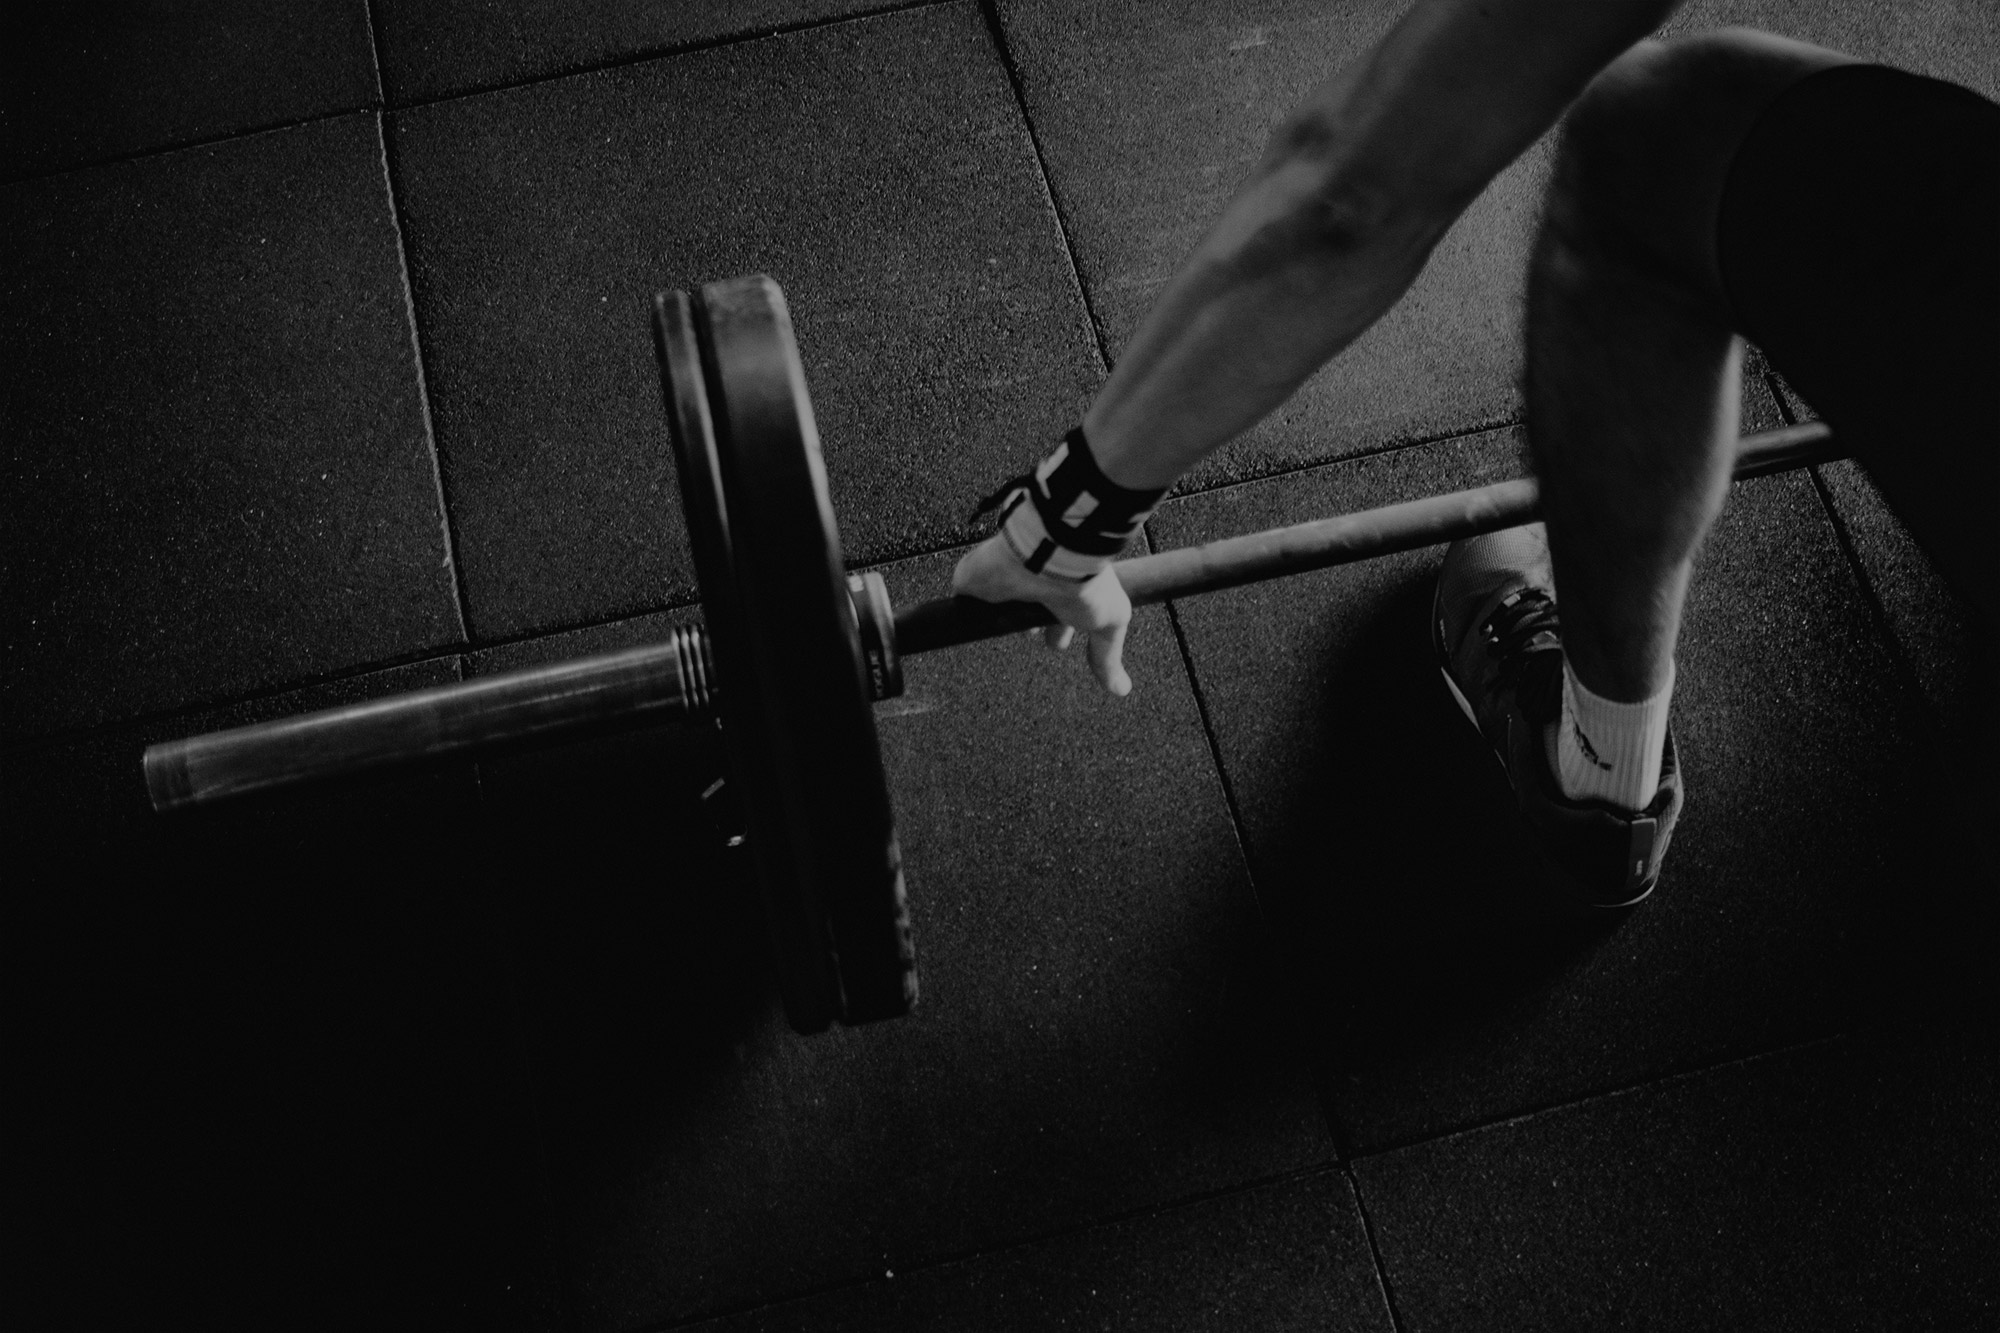 A young man in position to perform a deadlift exercise at the gym